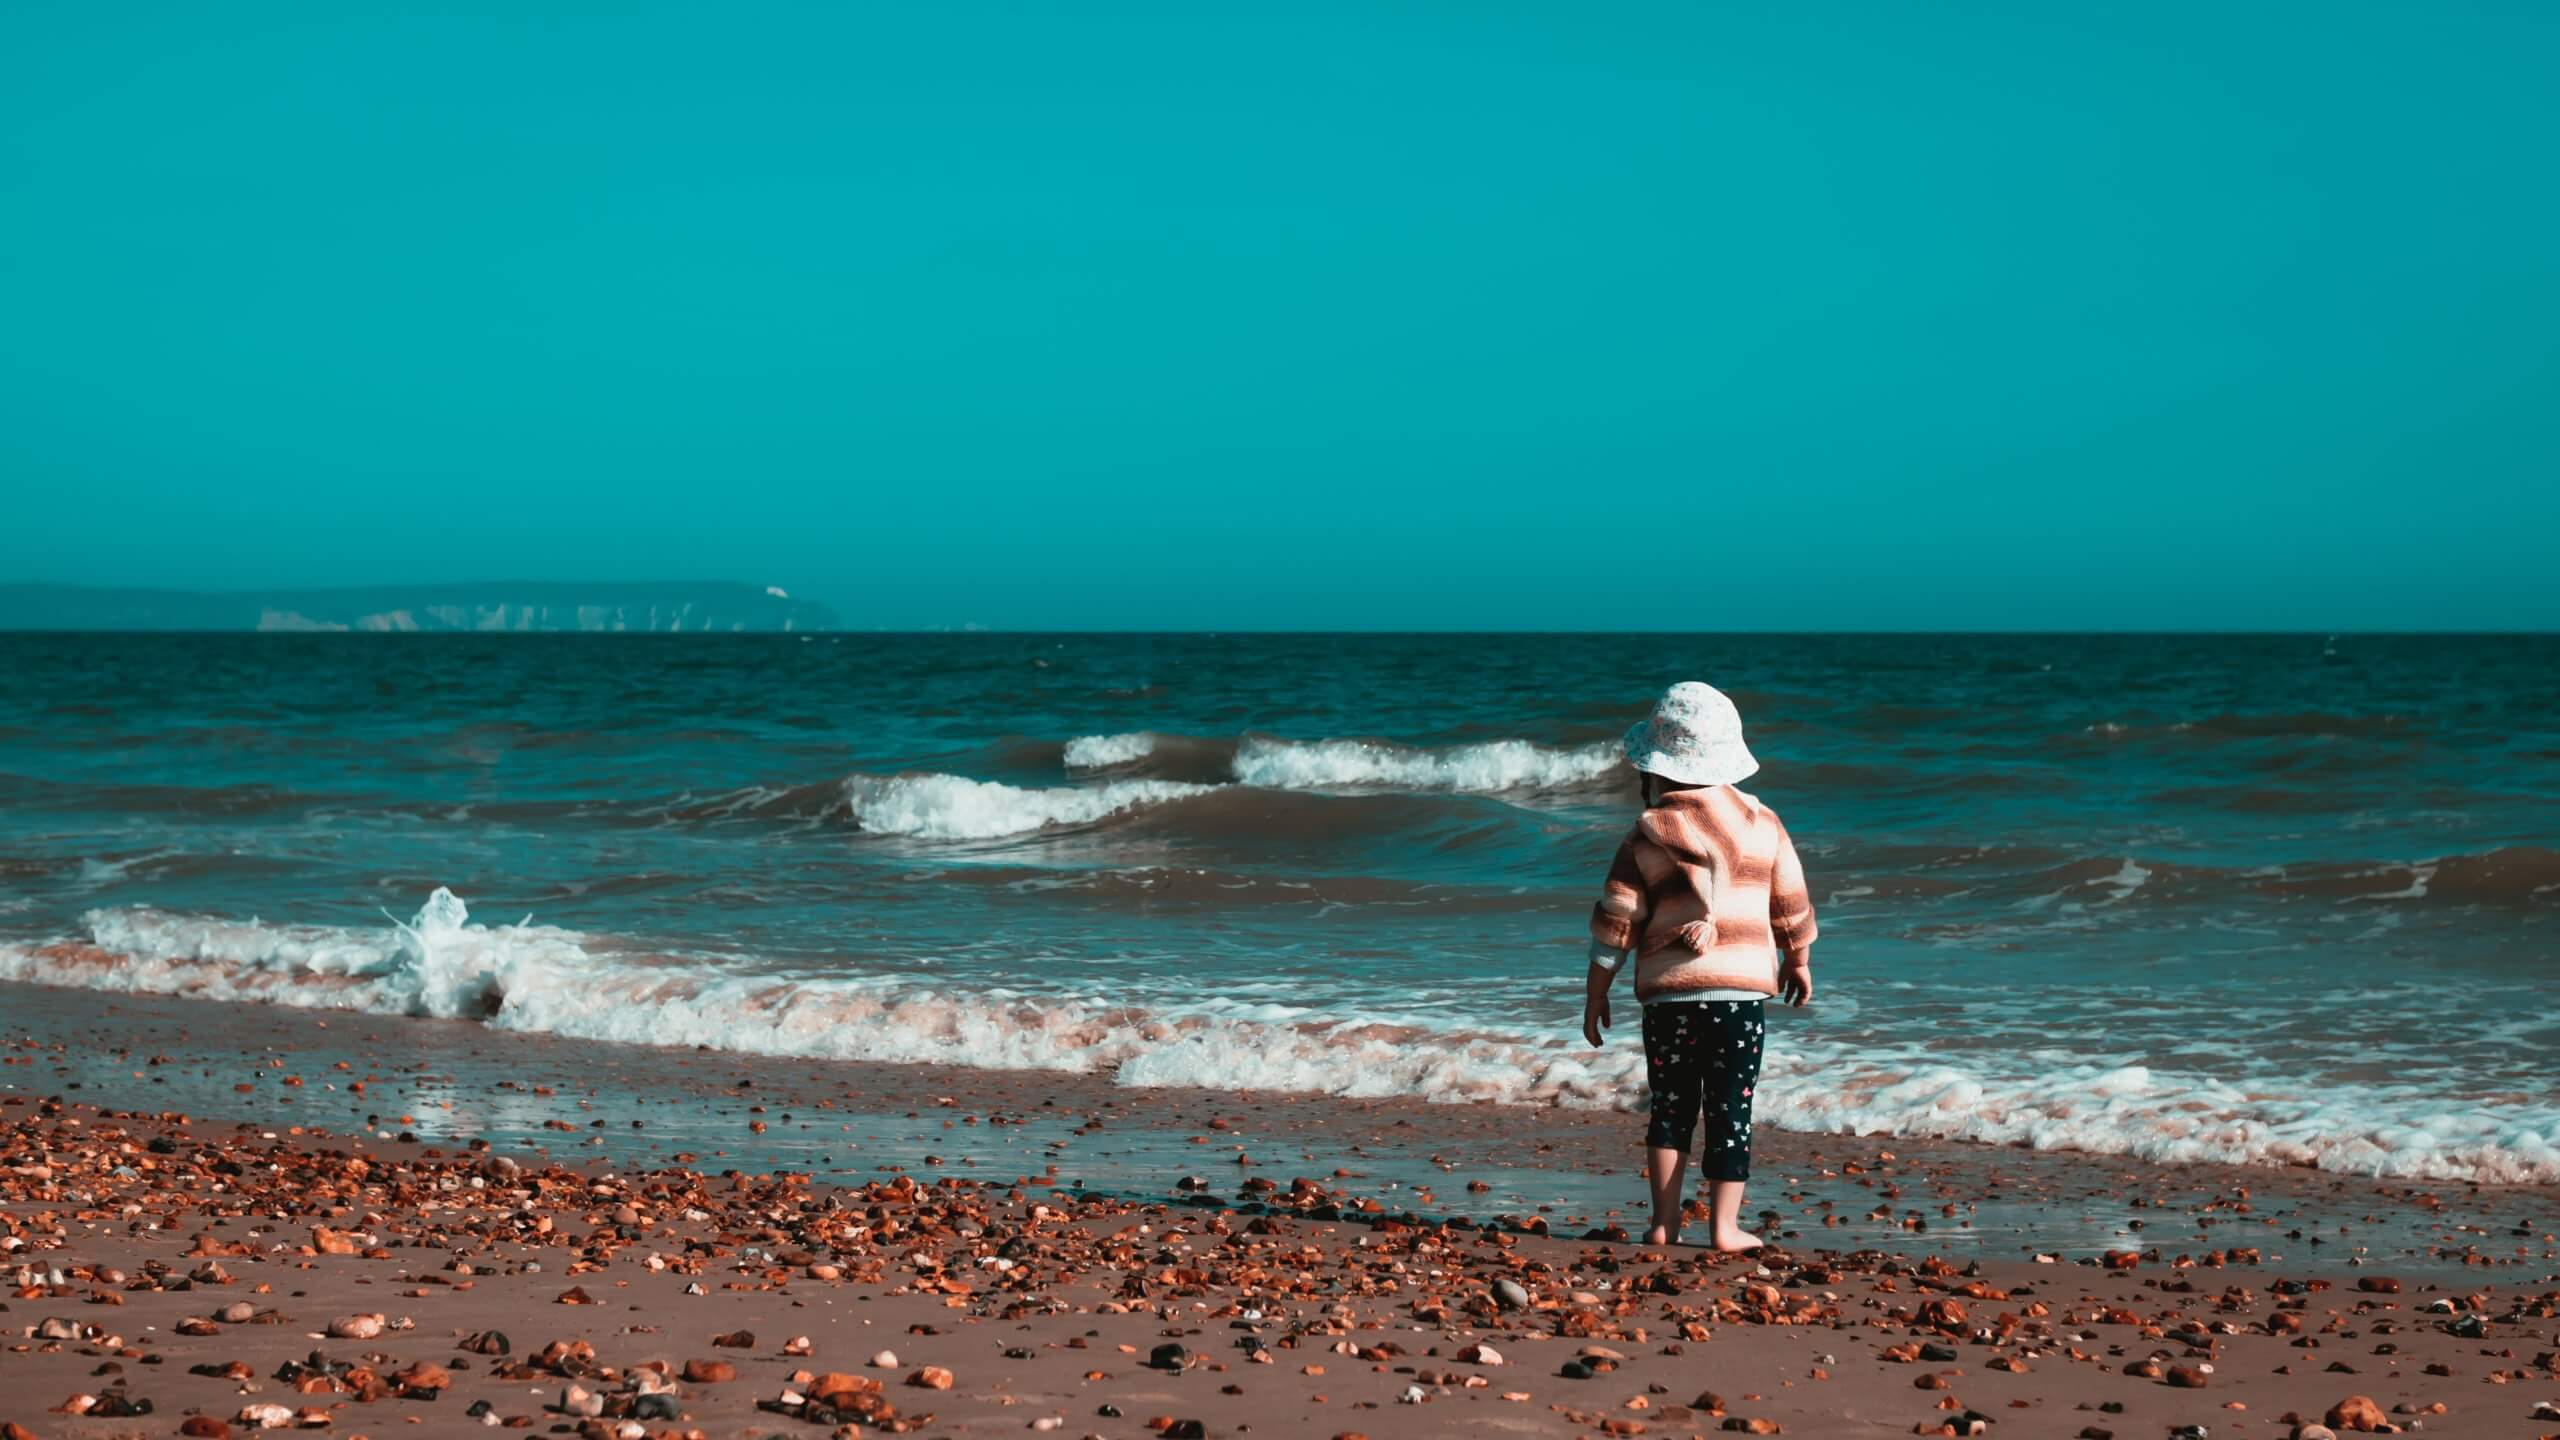 small child standing by the ocean